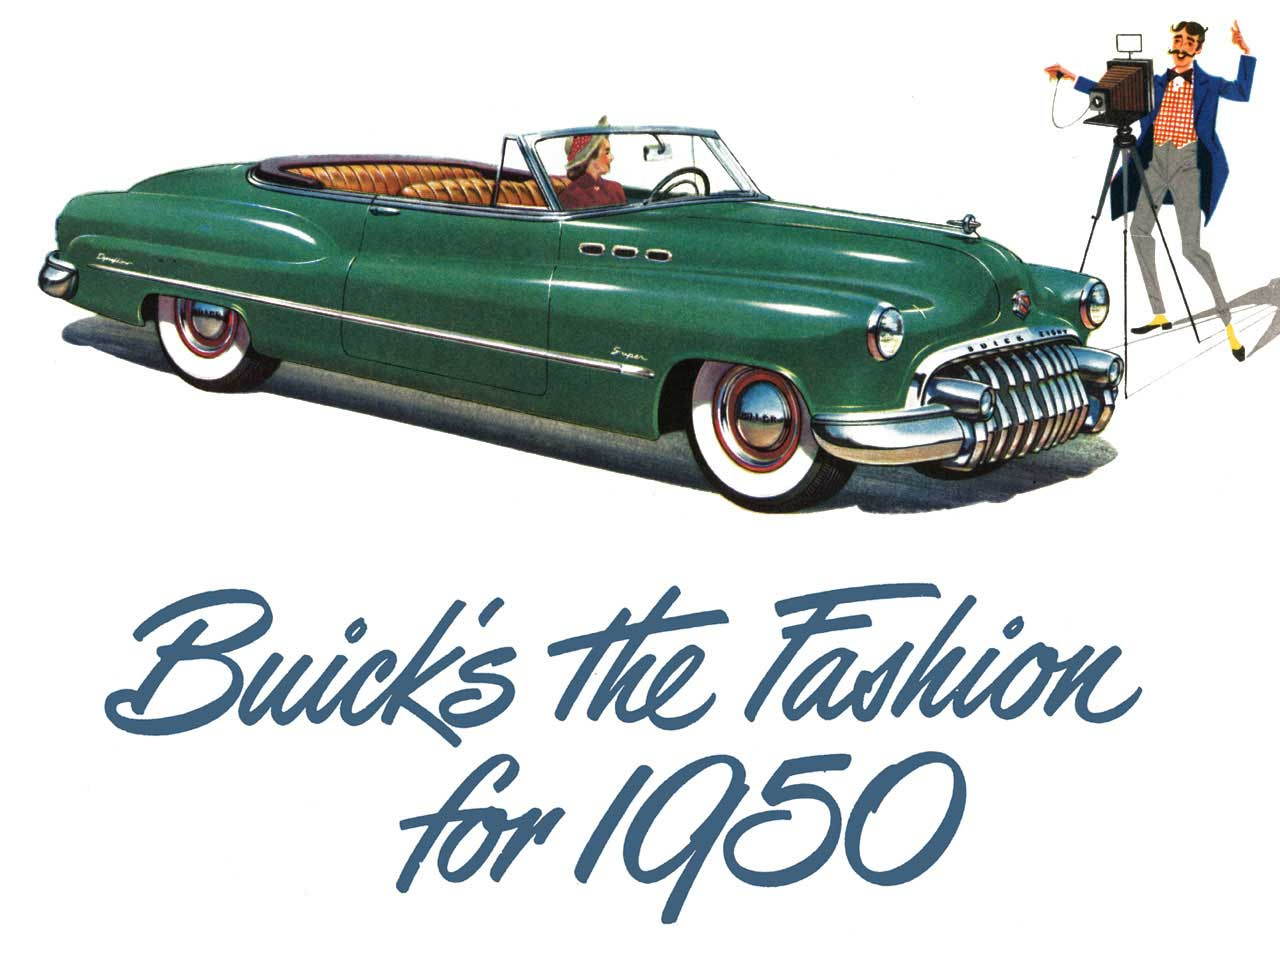 1950 Buick - Buicks the Fashion for 1950